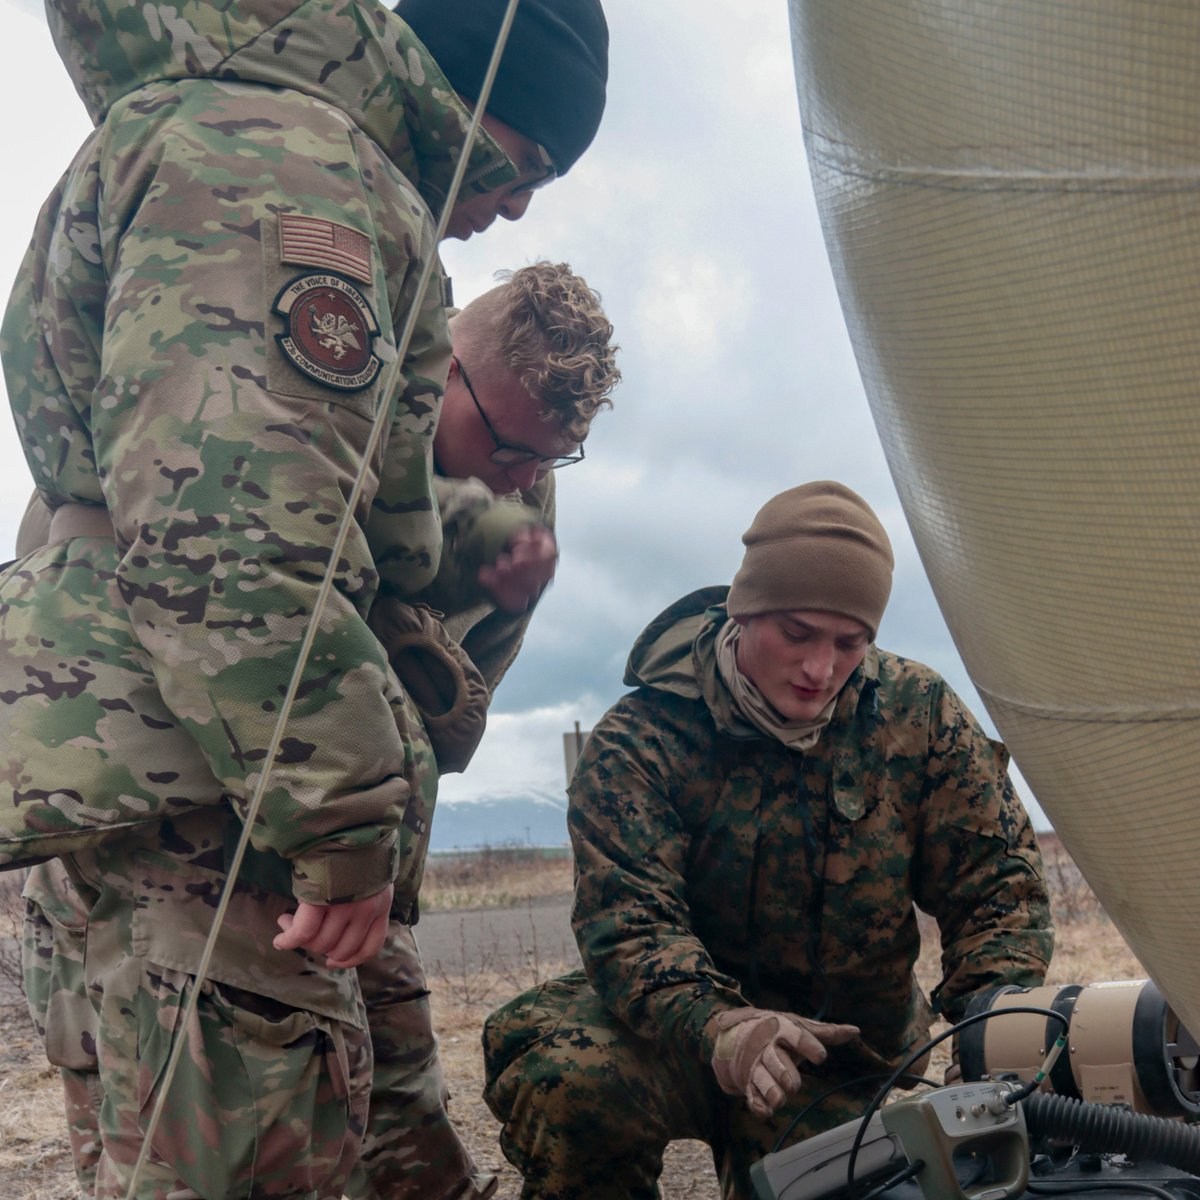 U.S. Marines and Airmen work together to test frequencies with a spectrum analyzer in support of #NorthernEdge21.   #OneTeamOneFight #Joint #StrongerTogether  @USMC @usairforce @PACAF @INDOPACOM @PACAF https://t.co/mYMT0spN3d